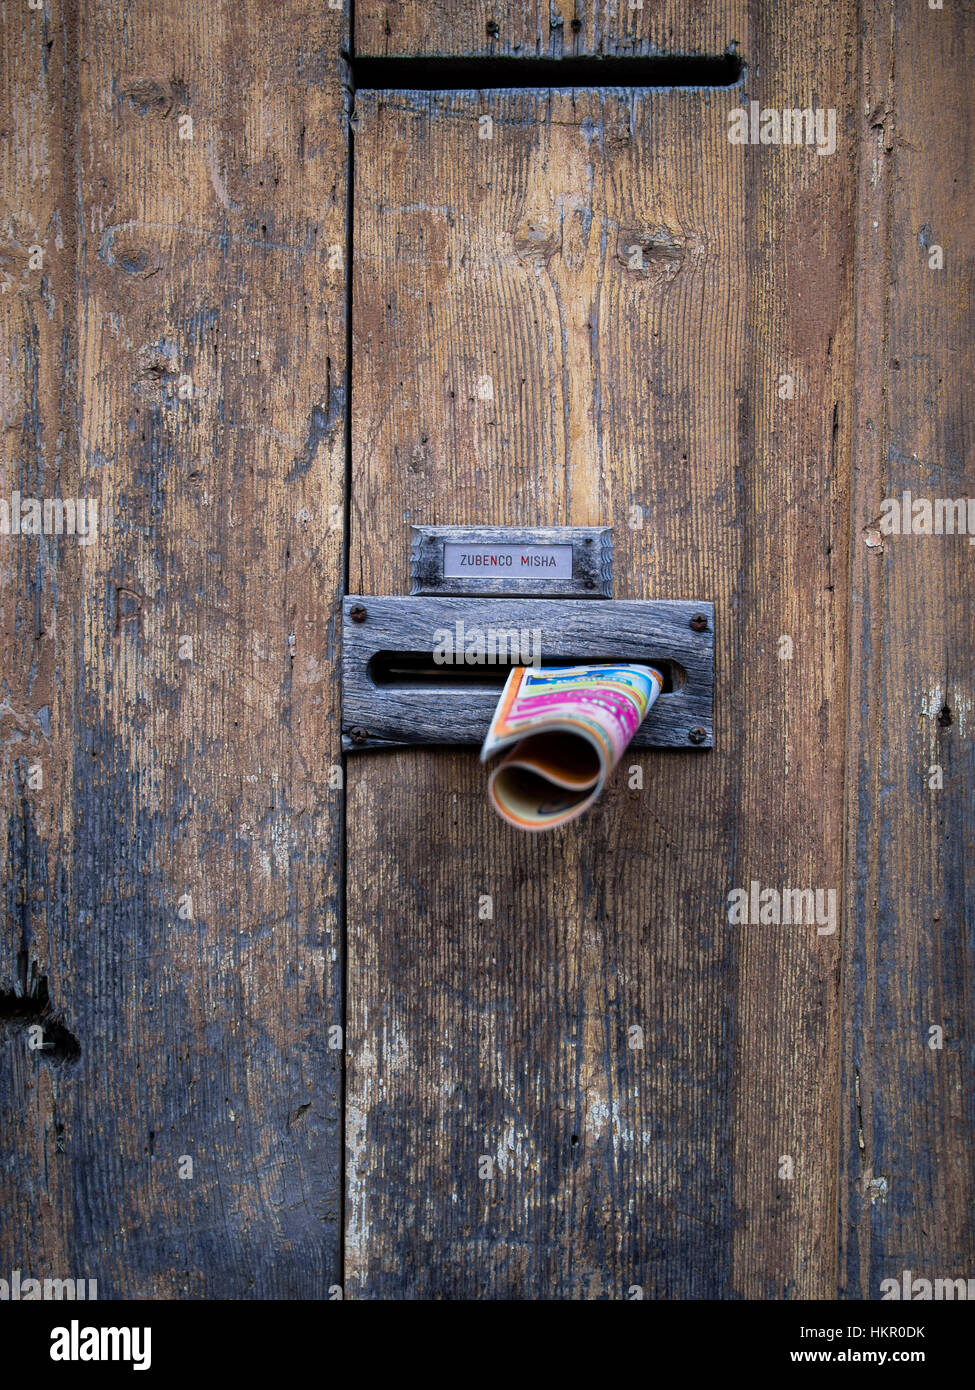 Junk advertising in the letterbox of an old door - Stock Image